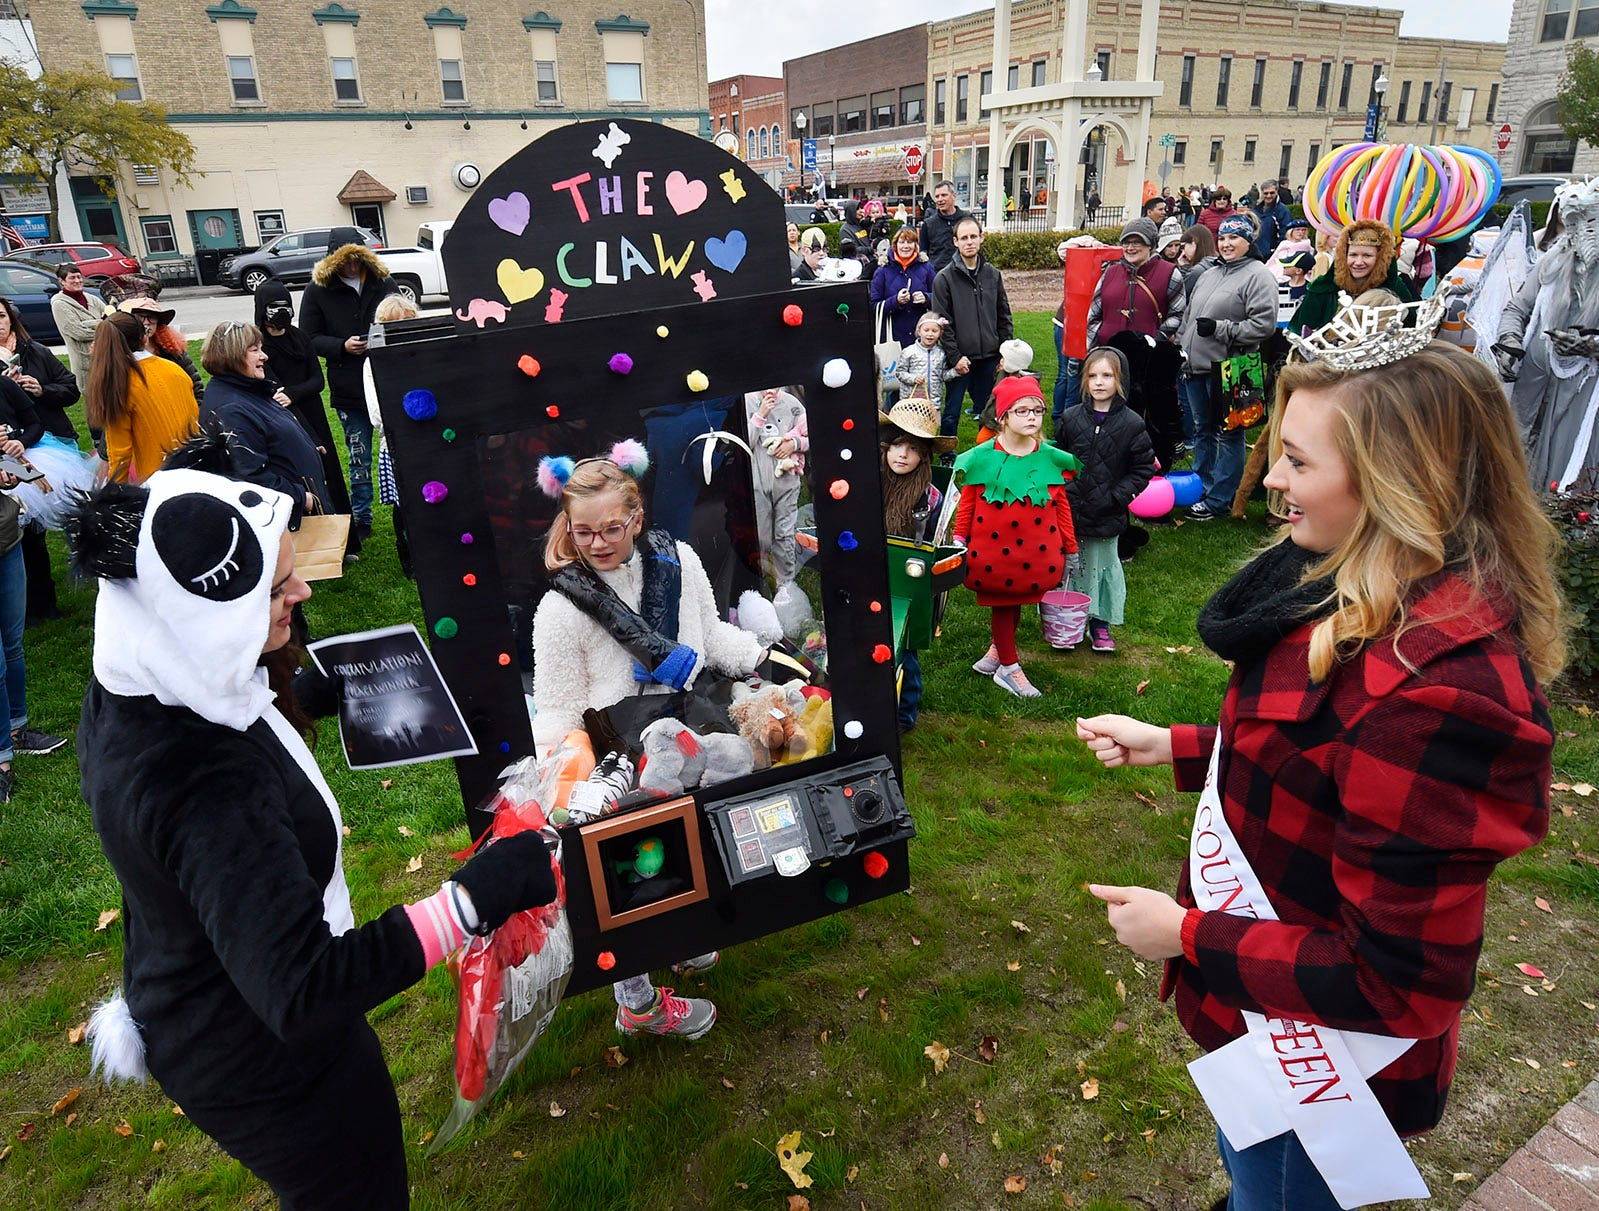 "The champion was ""The Claw'' worn by Ophelia Linnan at the Thrills on Third costume parade on Saturday, Oct. 27, 2018, in Sturgeon Bay. Tina M. Gohr/USA TODAY NETWORK-Wisconsin"